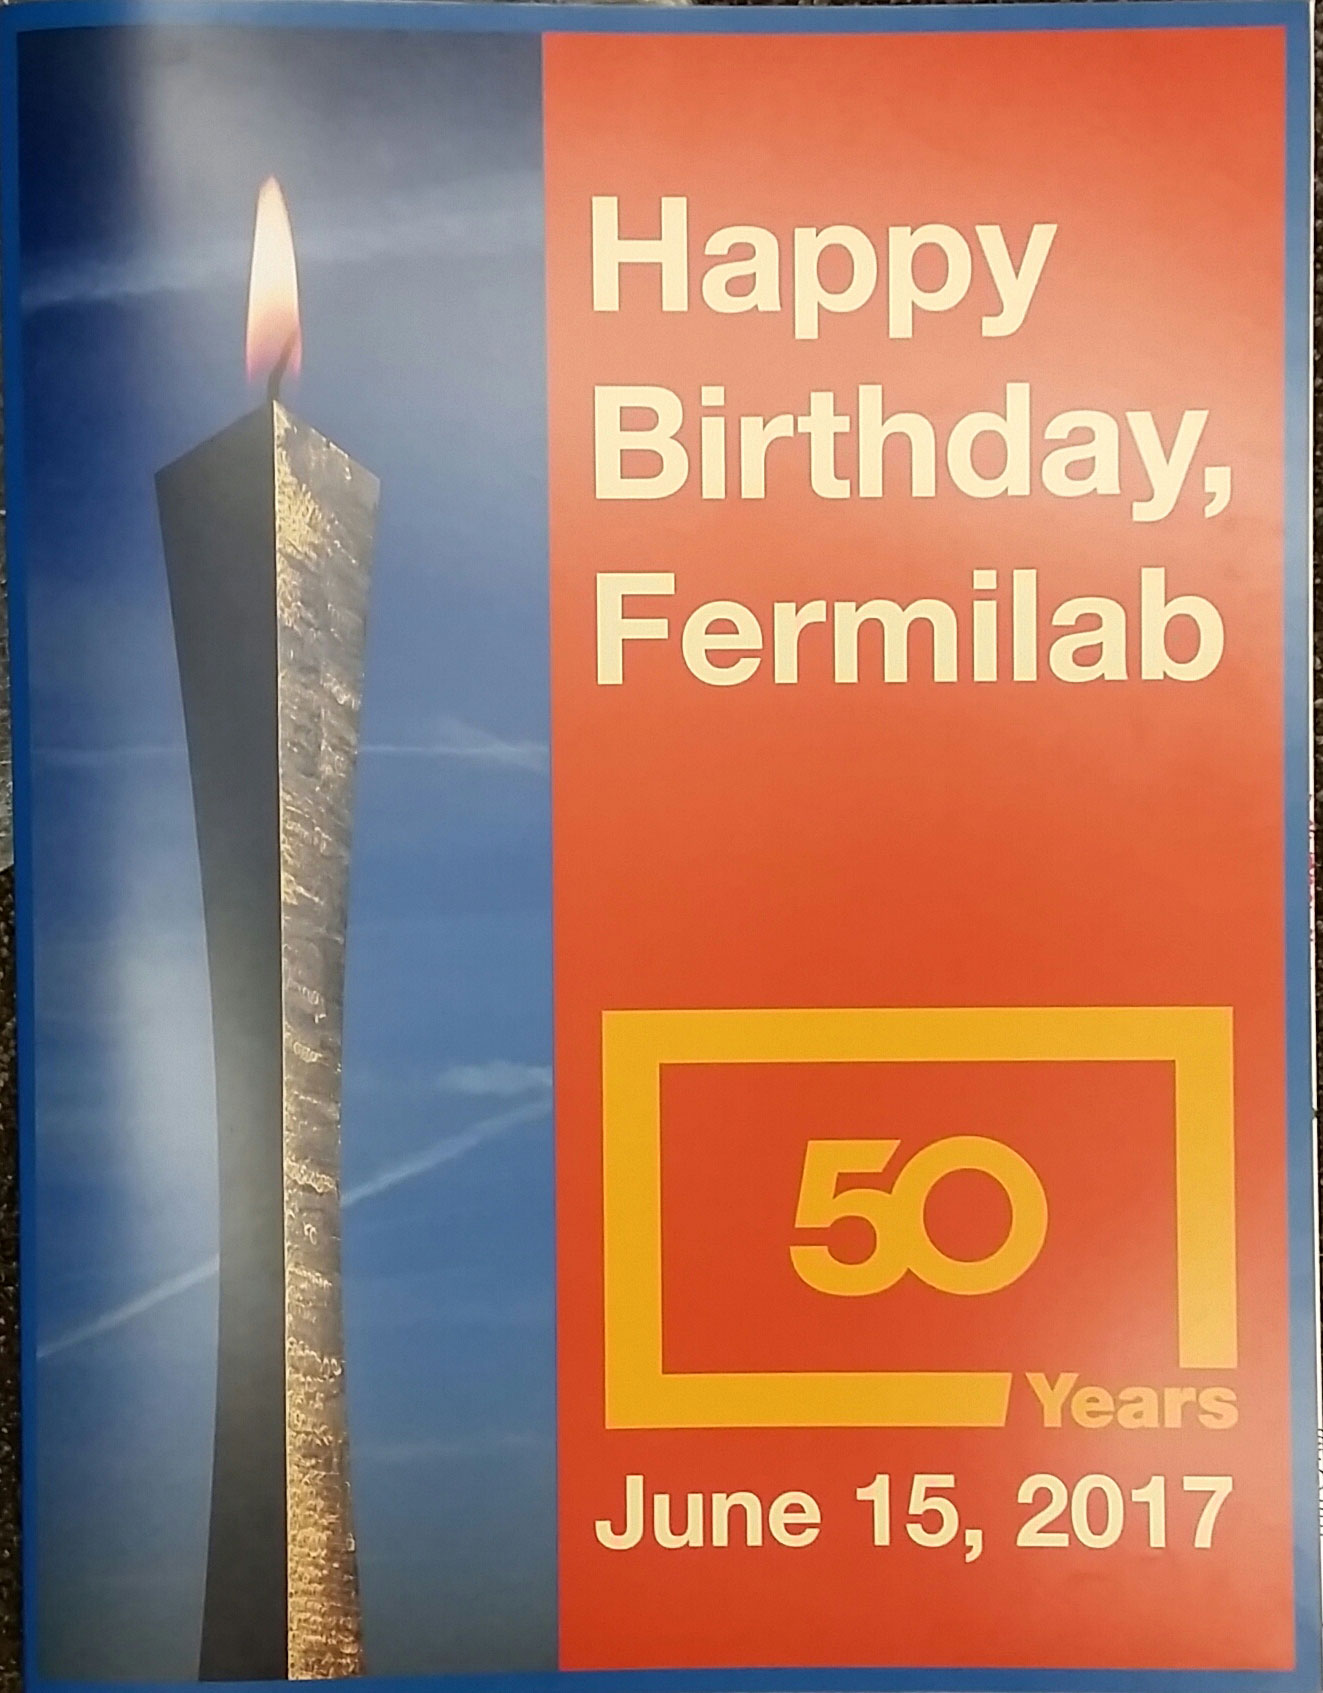 And To Our Very Own Fermilab Staff Users For The Birthday Congratulations May We Enjoy Another 50 Years Of Science Discovery